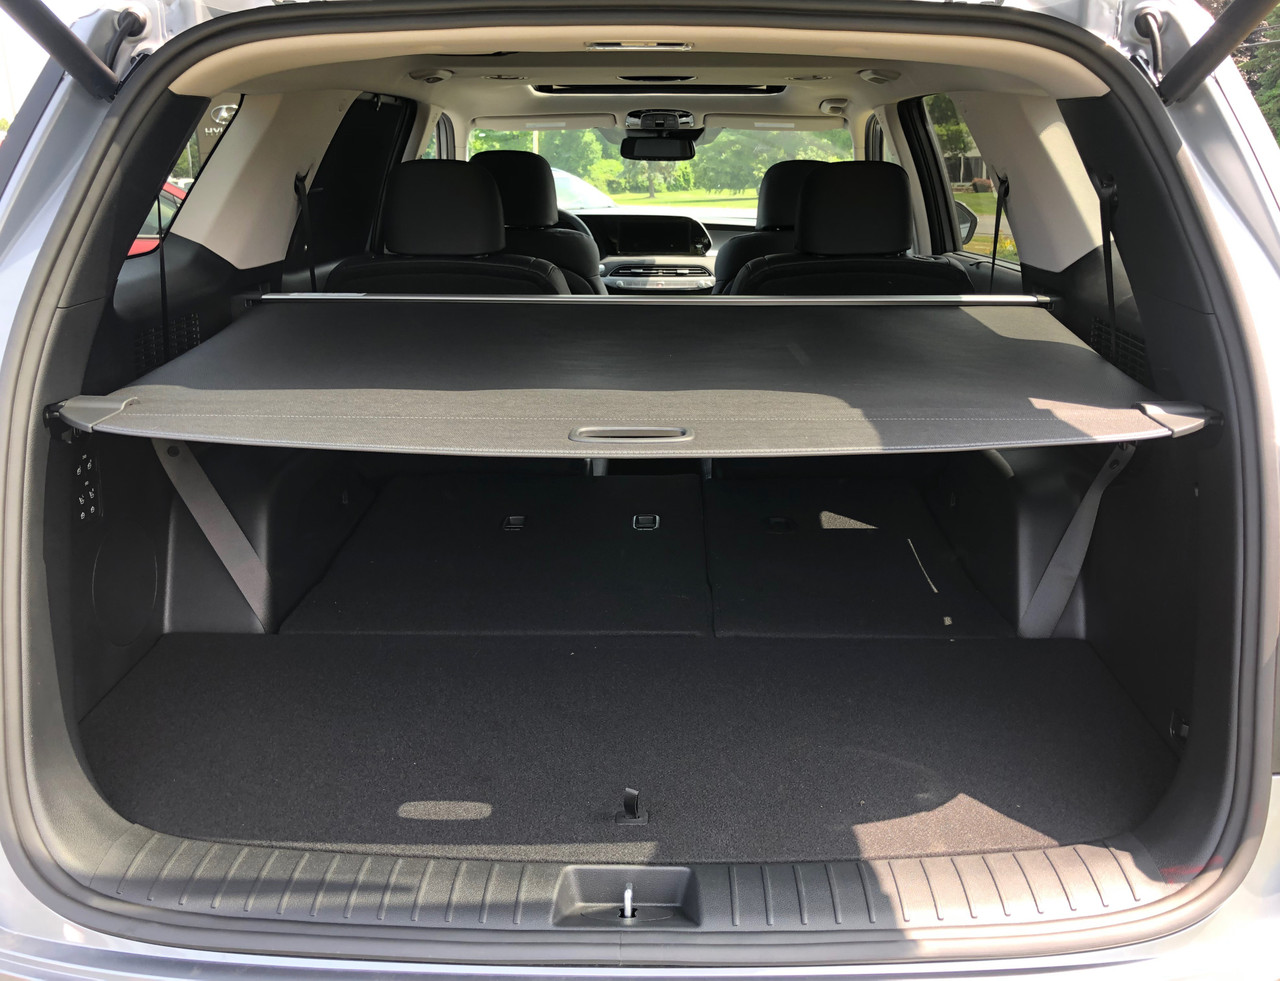 2020 Hyundai Palisade Cargo Screen Free Shipping